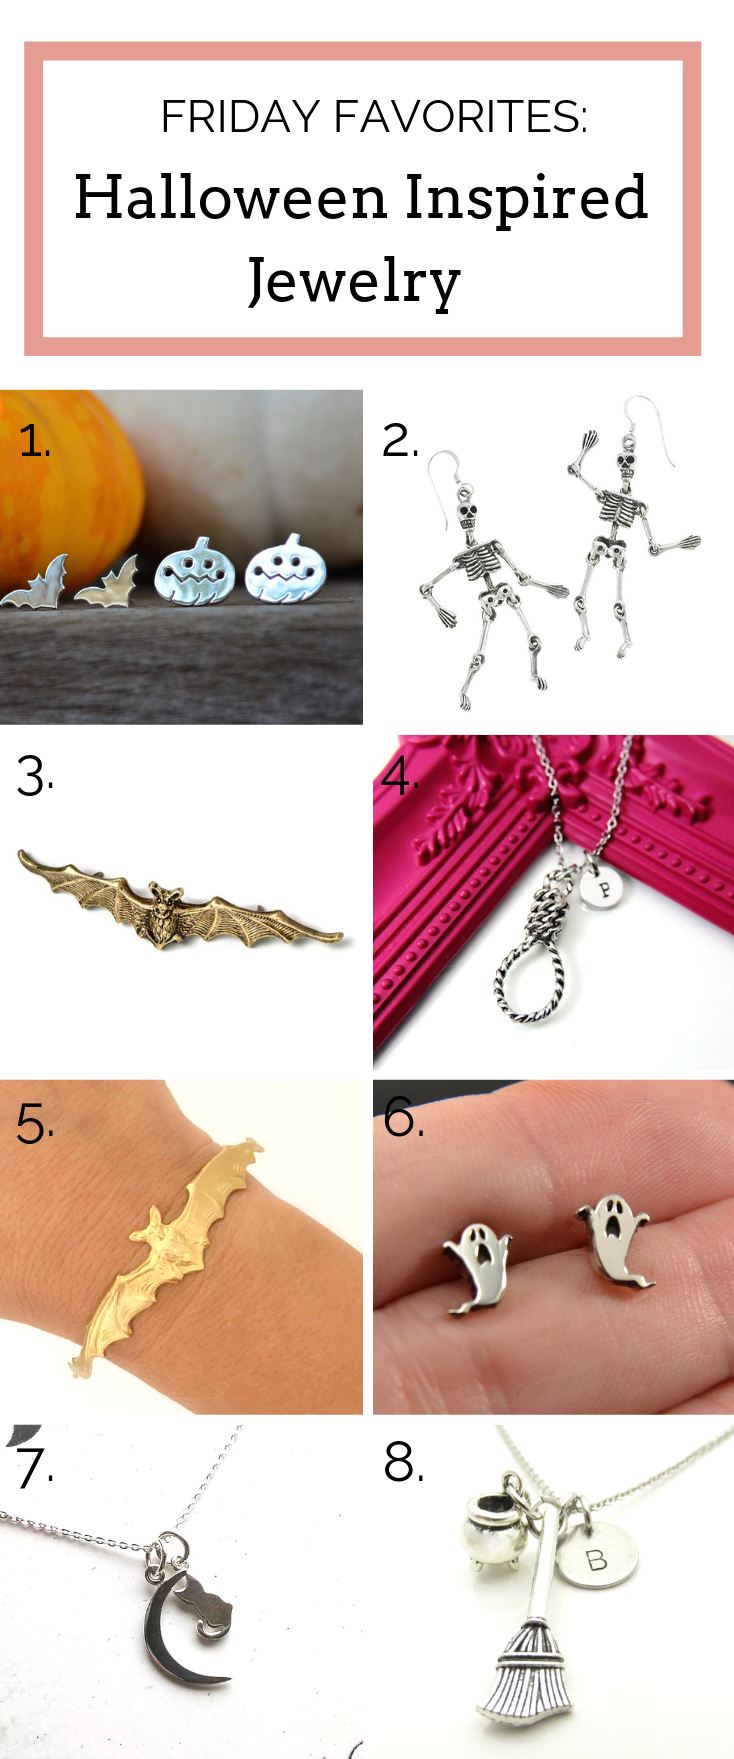 Halloween-Inspired-Jewelry.png